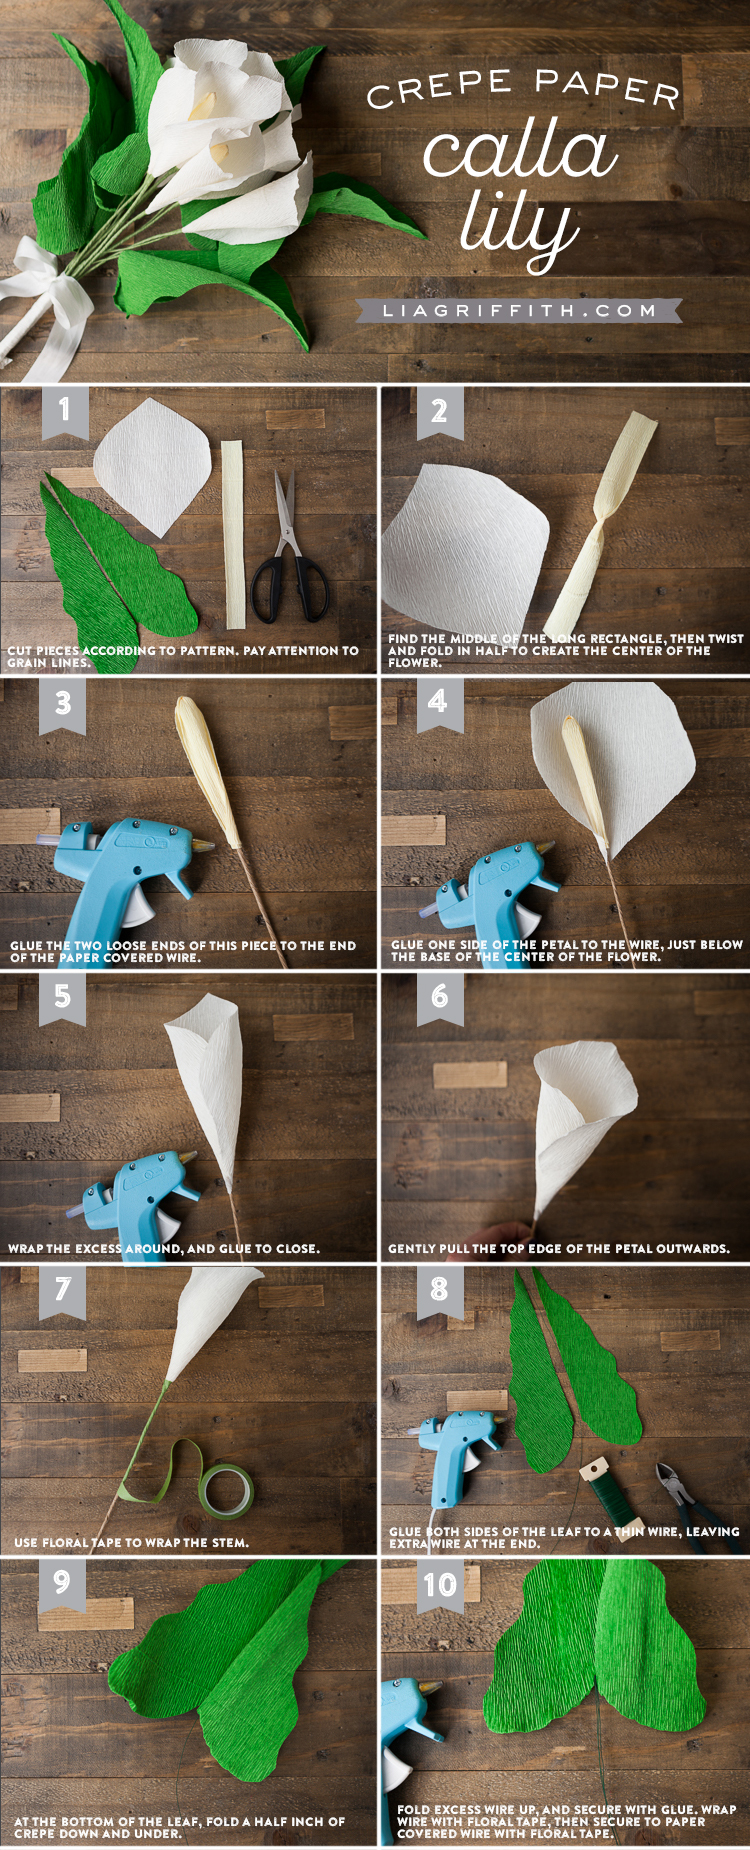 Crepe paper calla lily lia griffith paper flower crafts or you are making your own diy wedding flowers you can share your pics with us over on facebook twitter or instagram using the izmirmasajfo